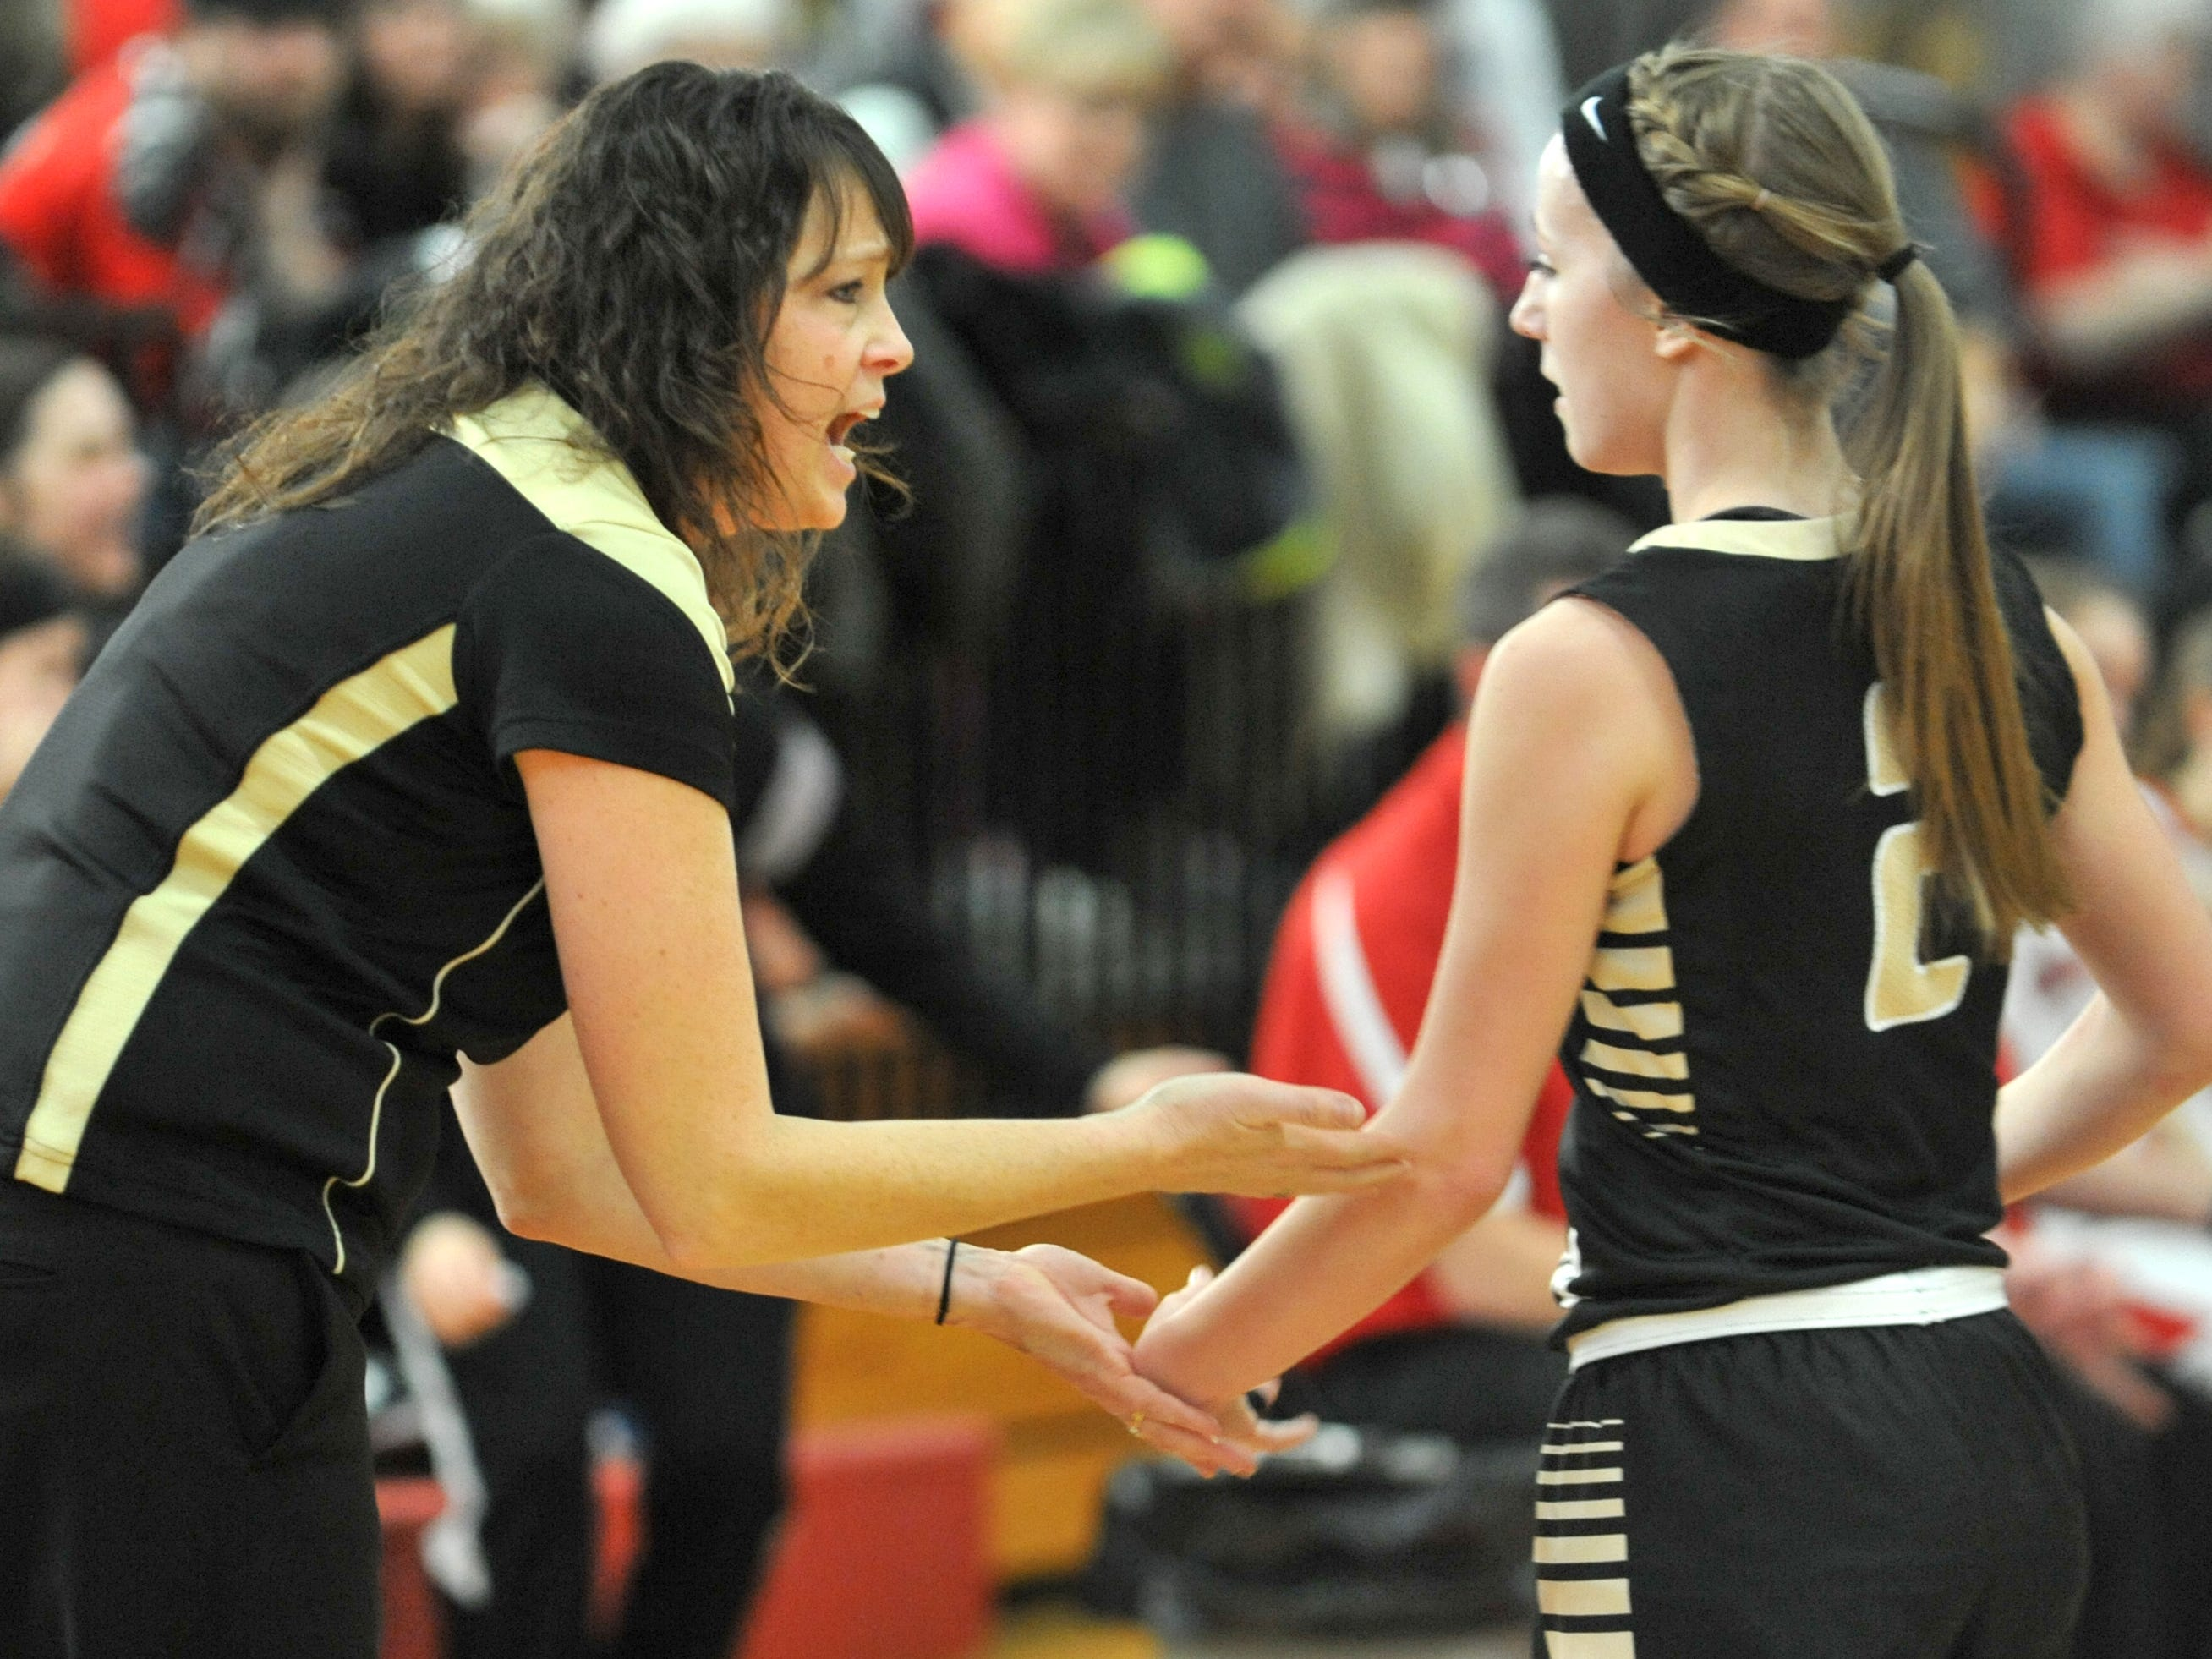 South Central girls basketball coach Becky Hintz talks to Asia Huffman during a break at Crestview earlier this year. Hintz resigned as head coach.